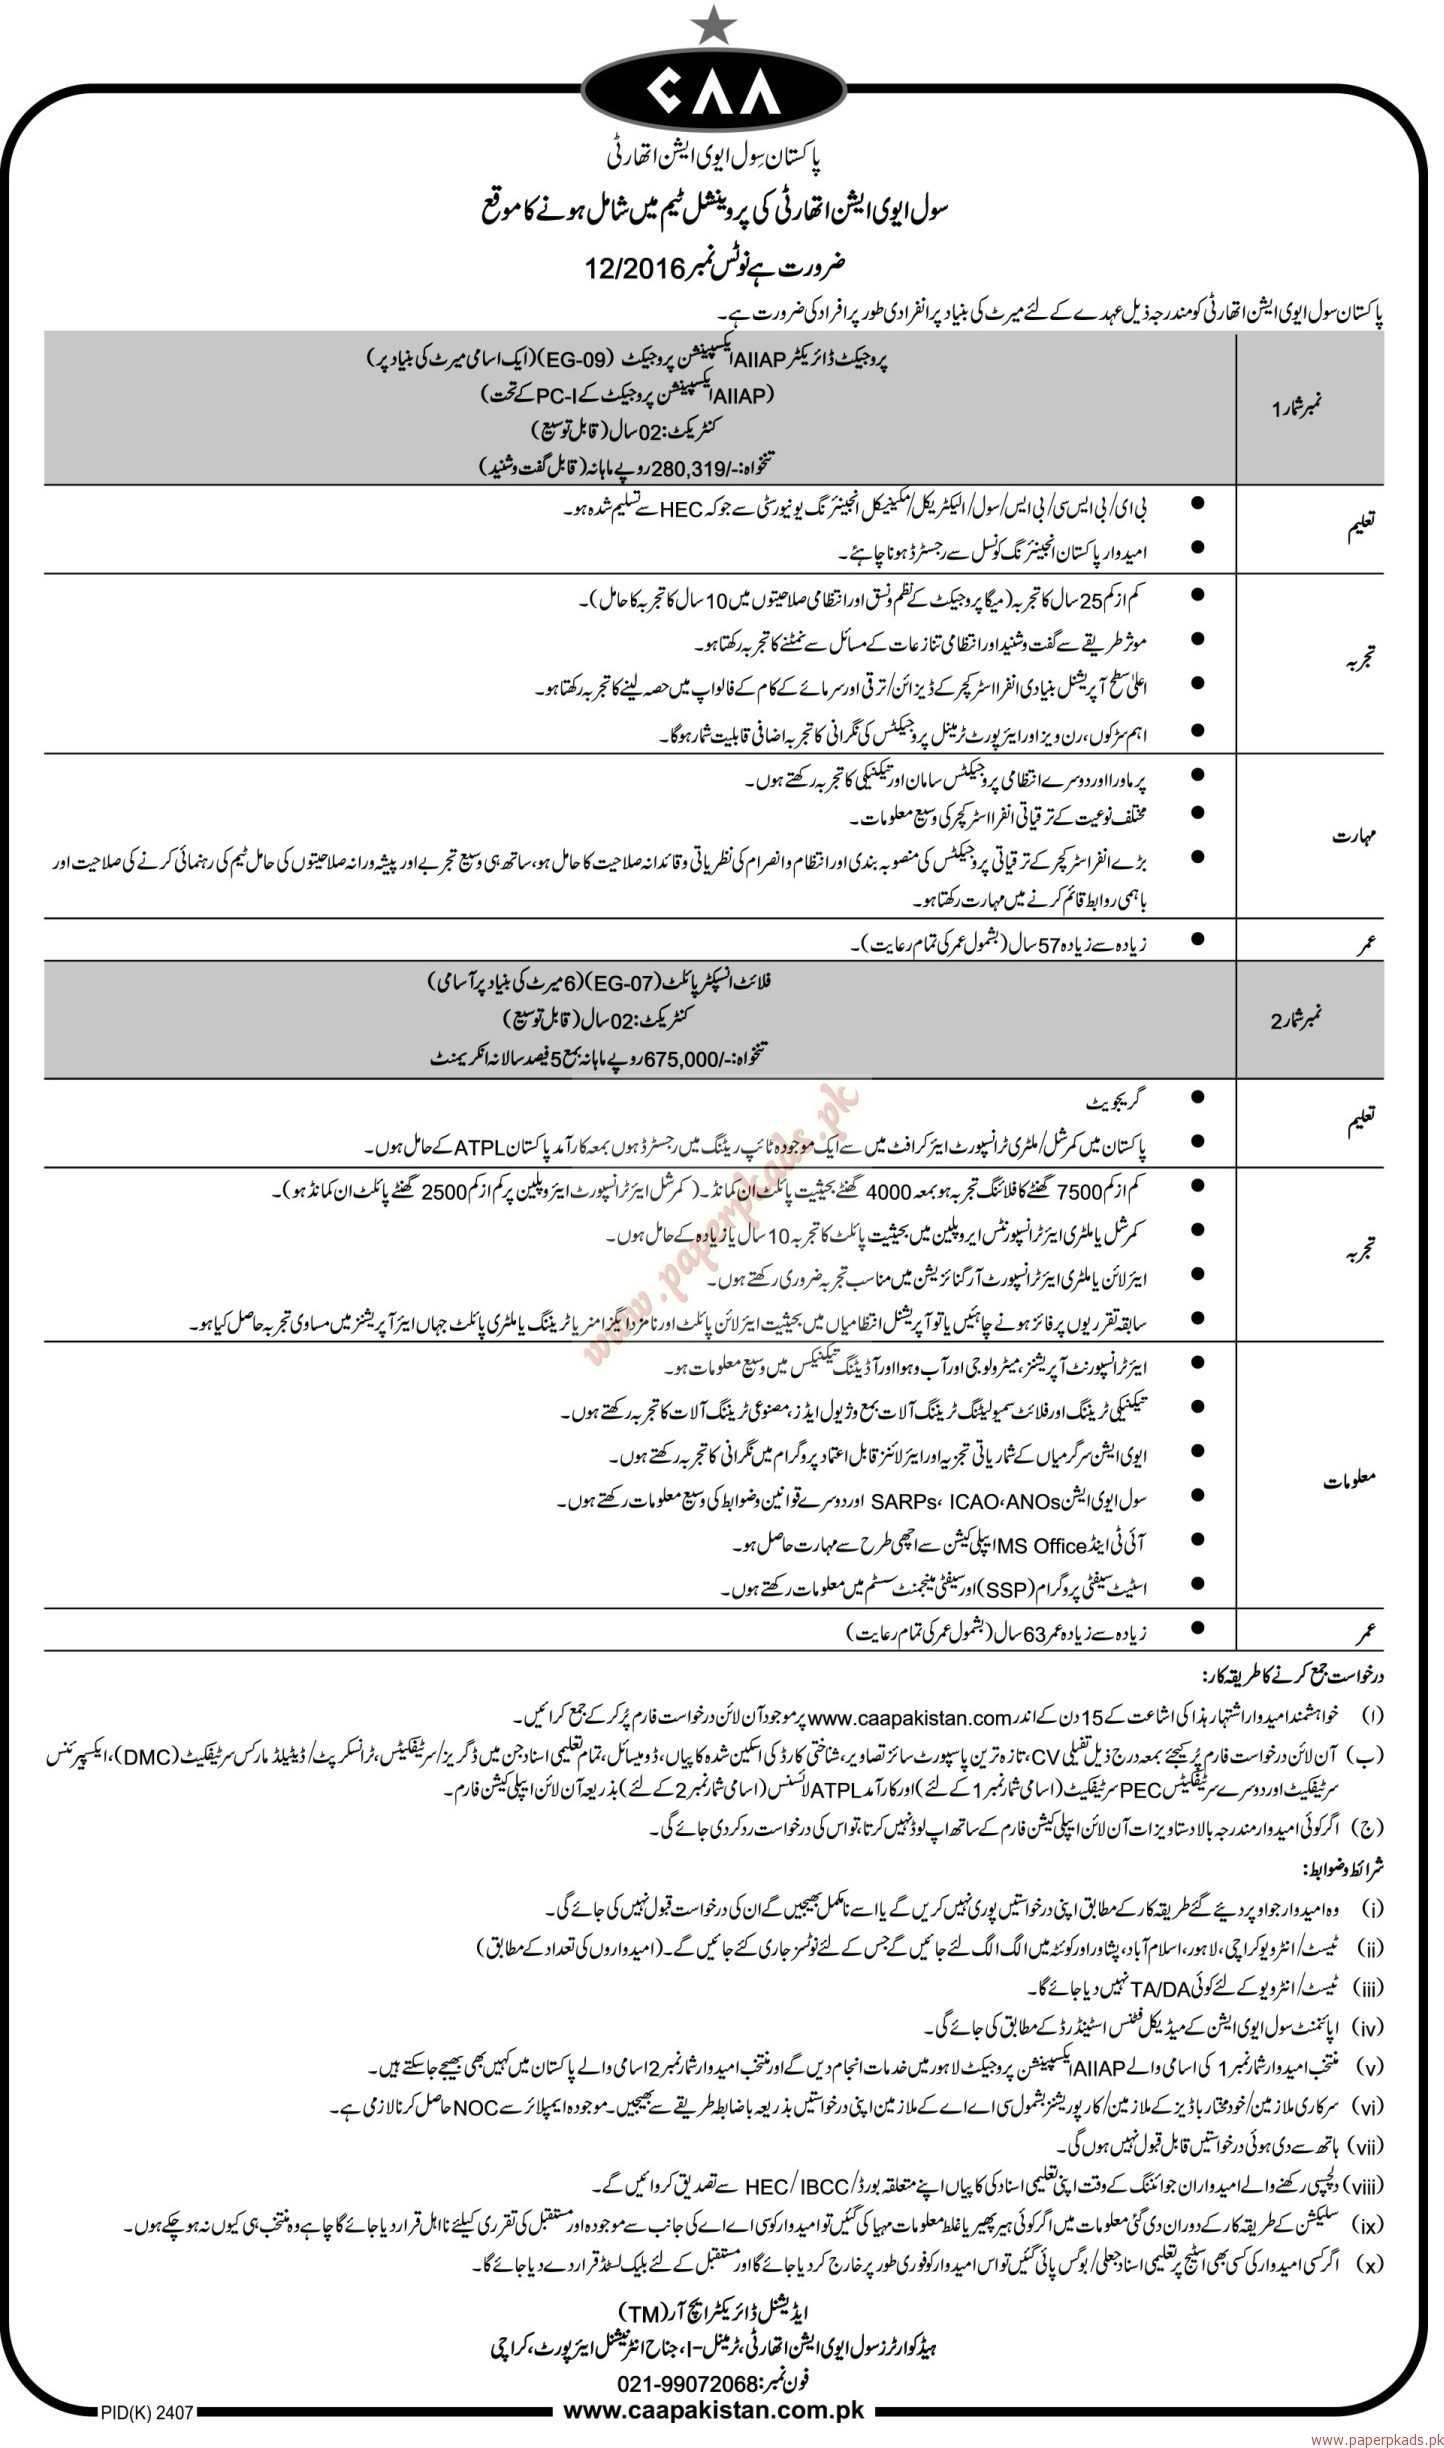 Pakistan Civil Aviation Authority Jobs - Mashriq Jobs ads 01 January 2017